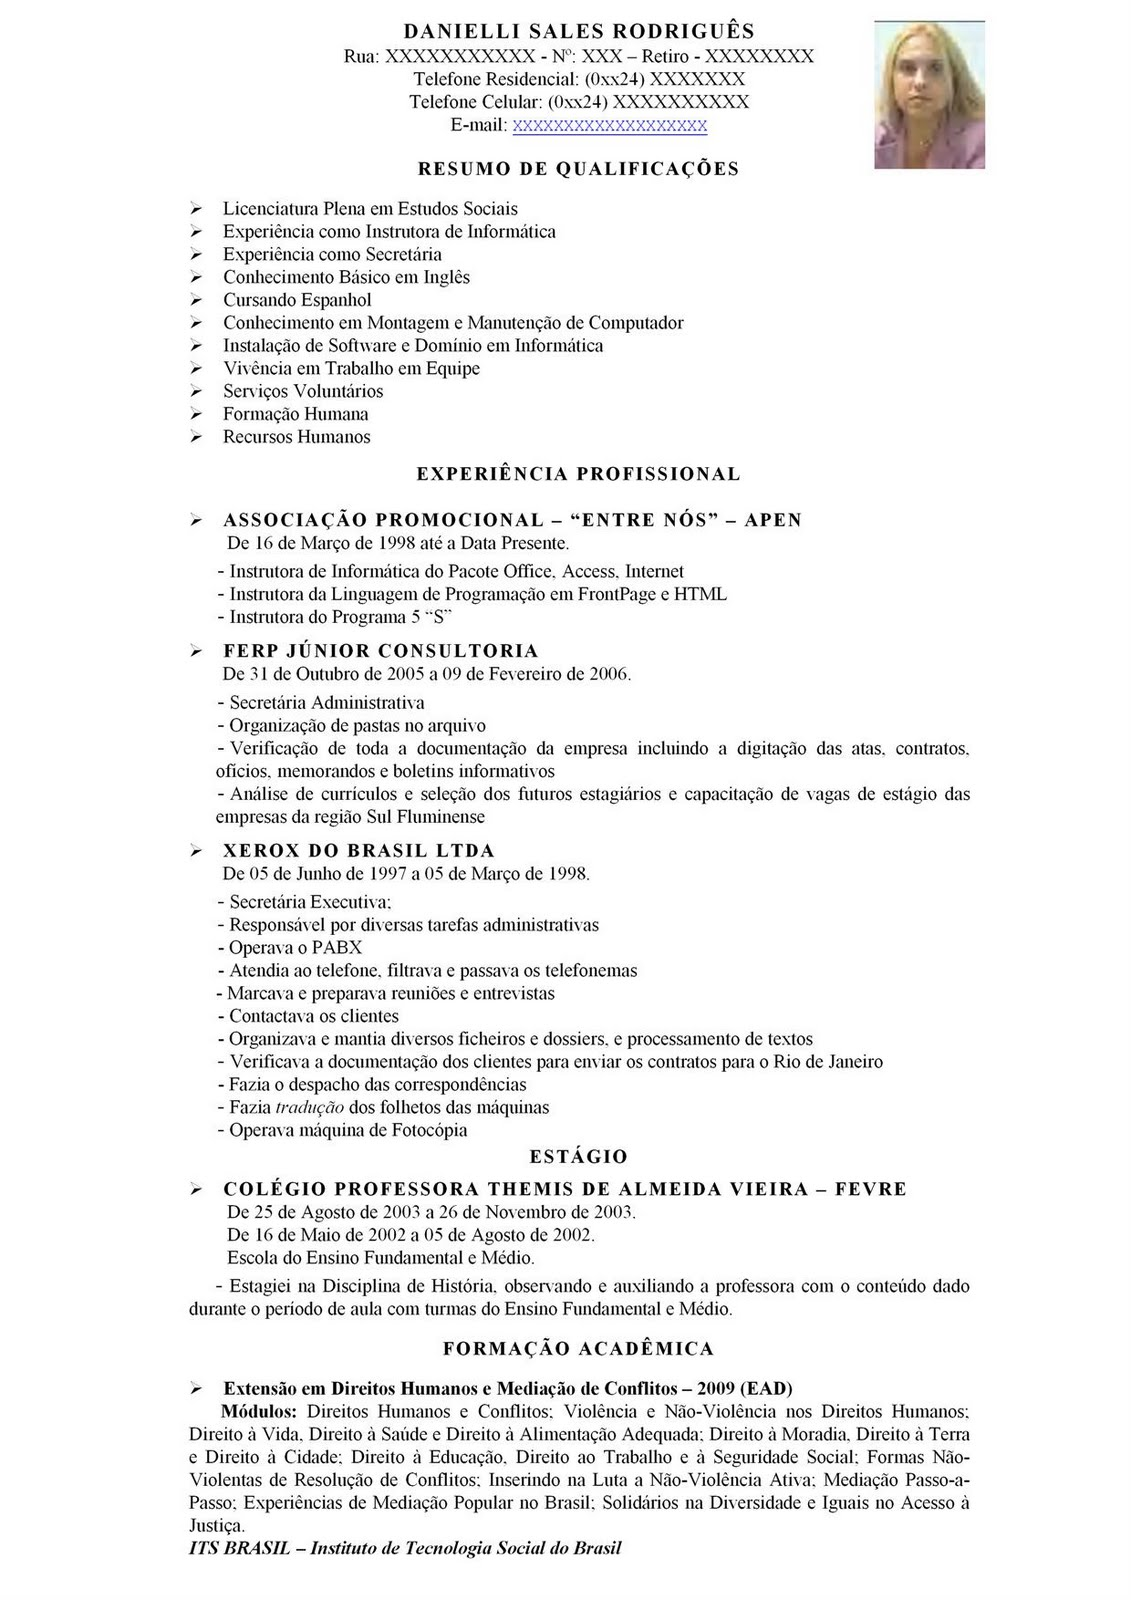 curriculum vitae how to do it resume builder for job curriculum vitae how to do it curriculum vitae europass modelos curriculum vitae pronto avar233 guia